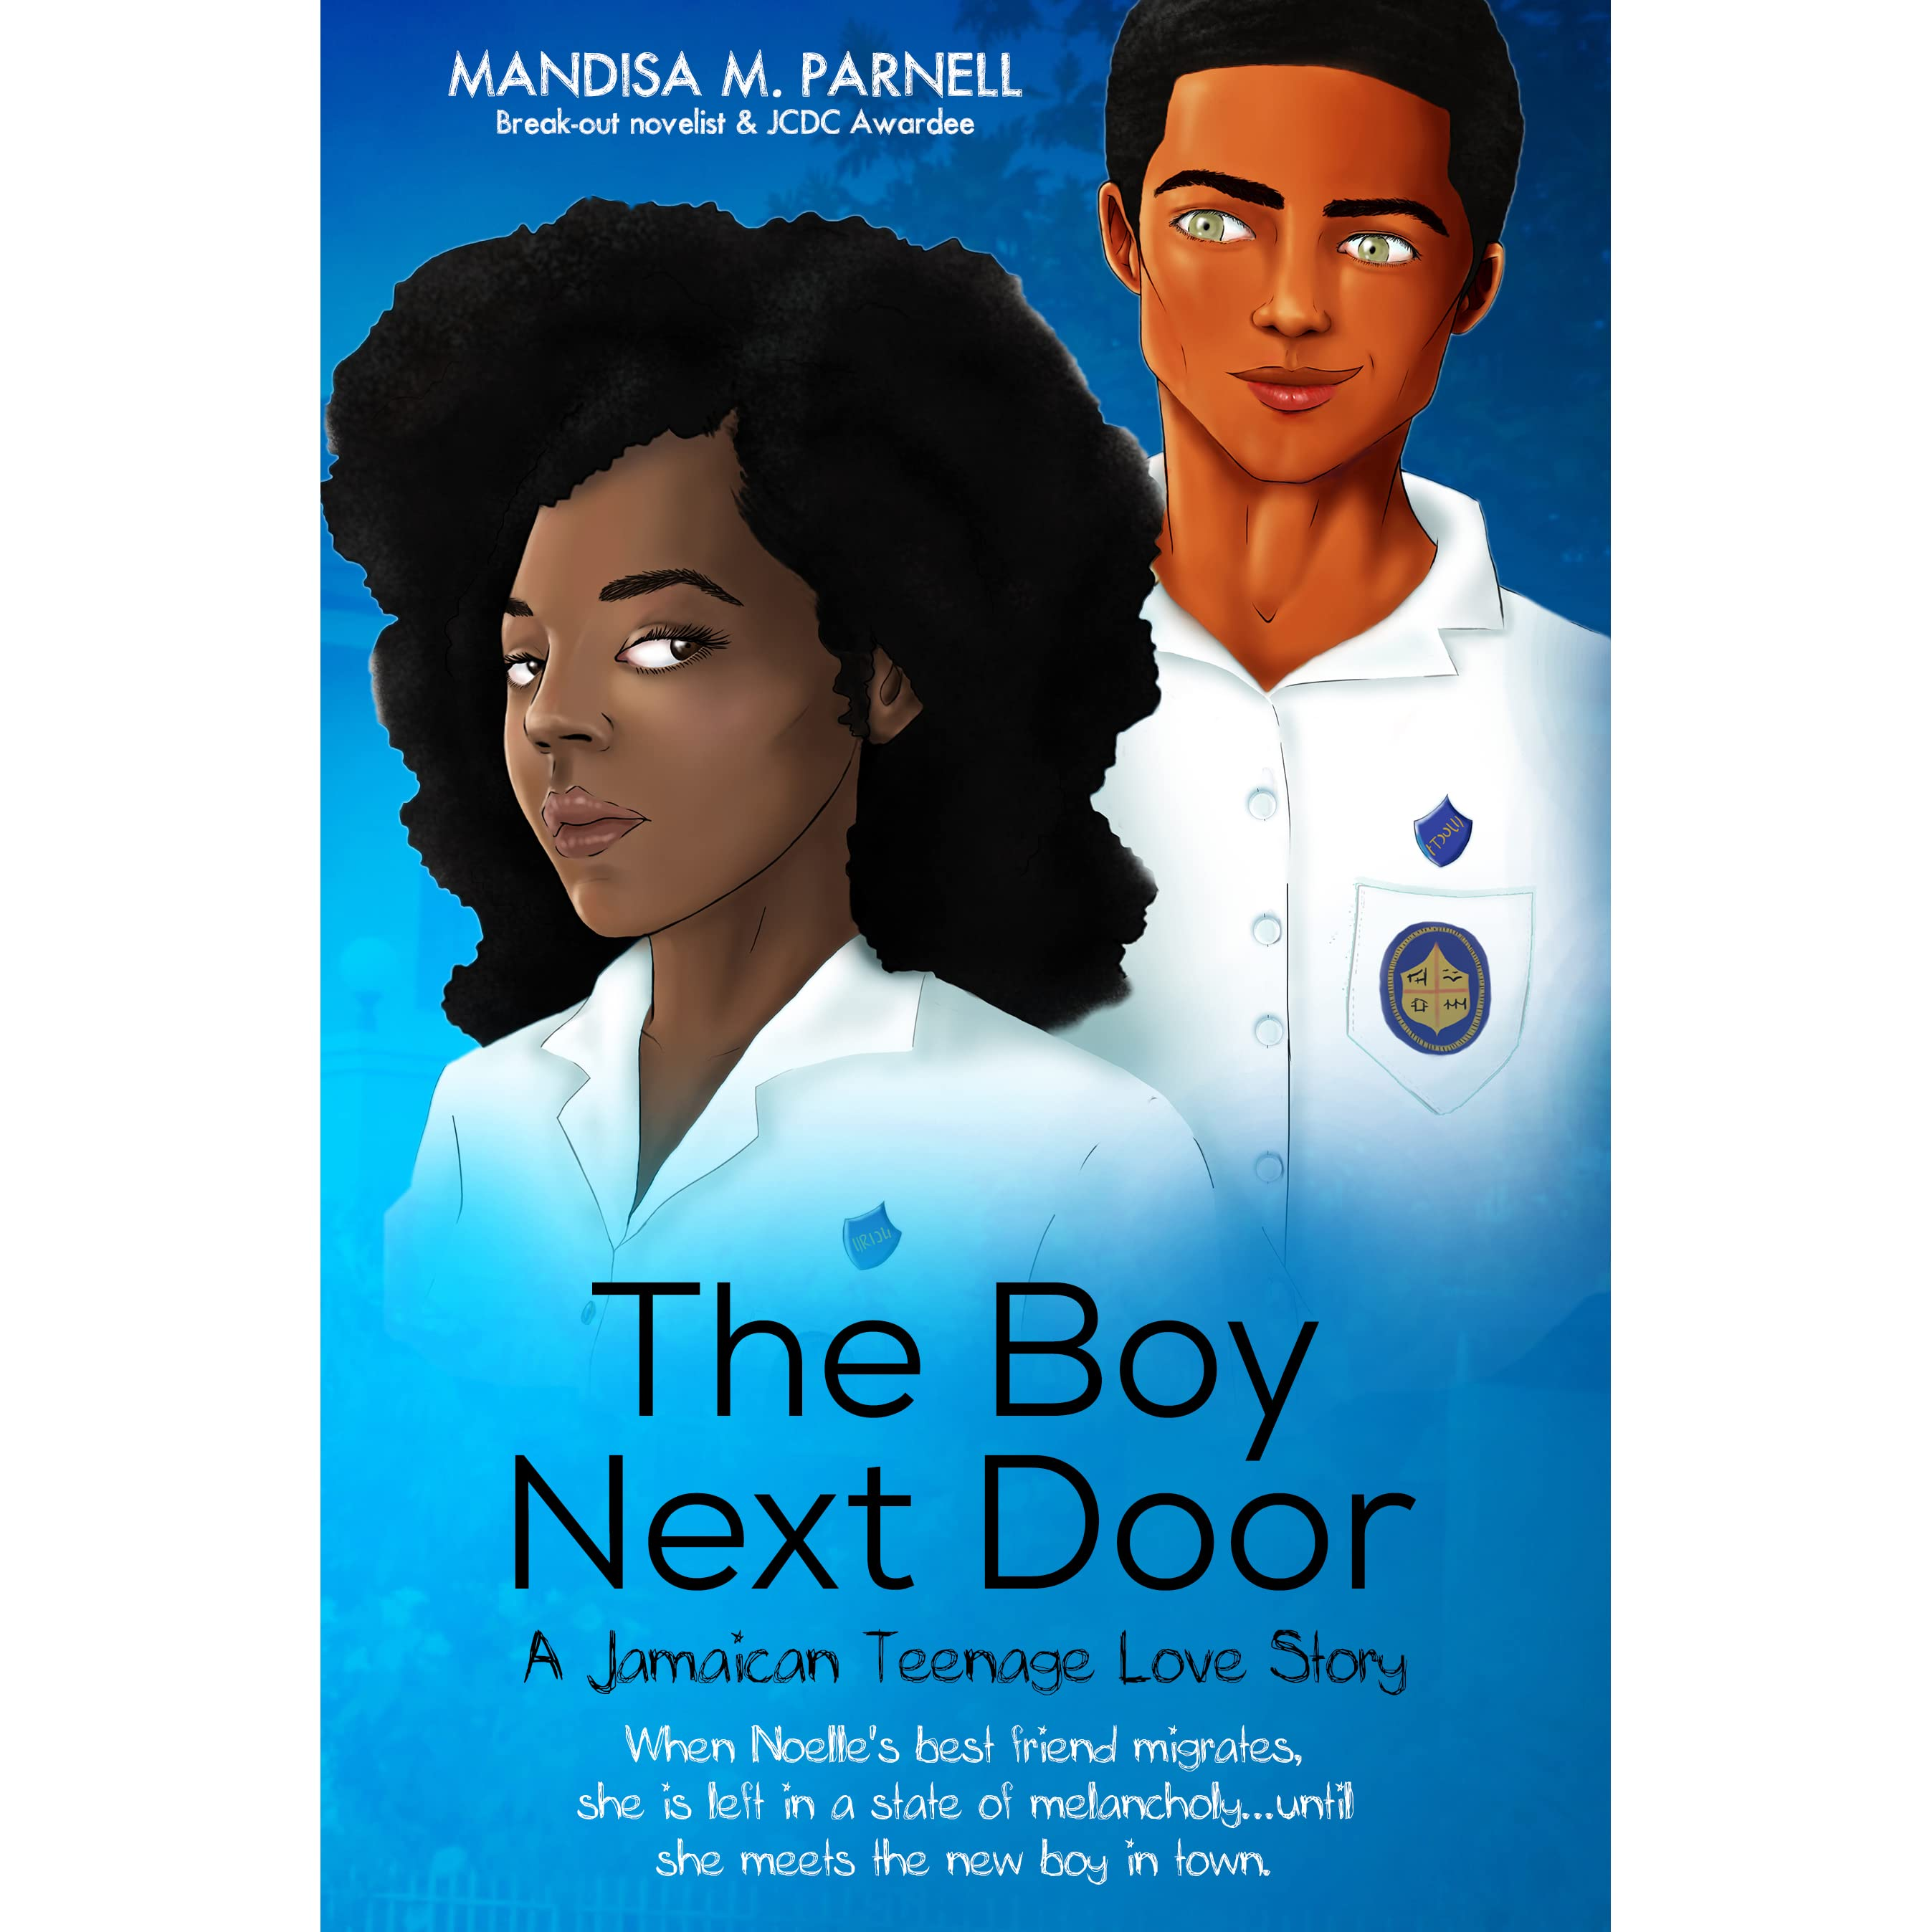 The Boy Next Door By Mandisa M. Parnell